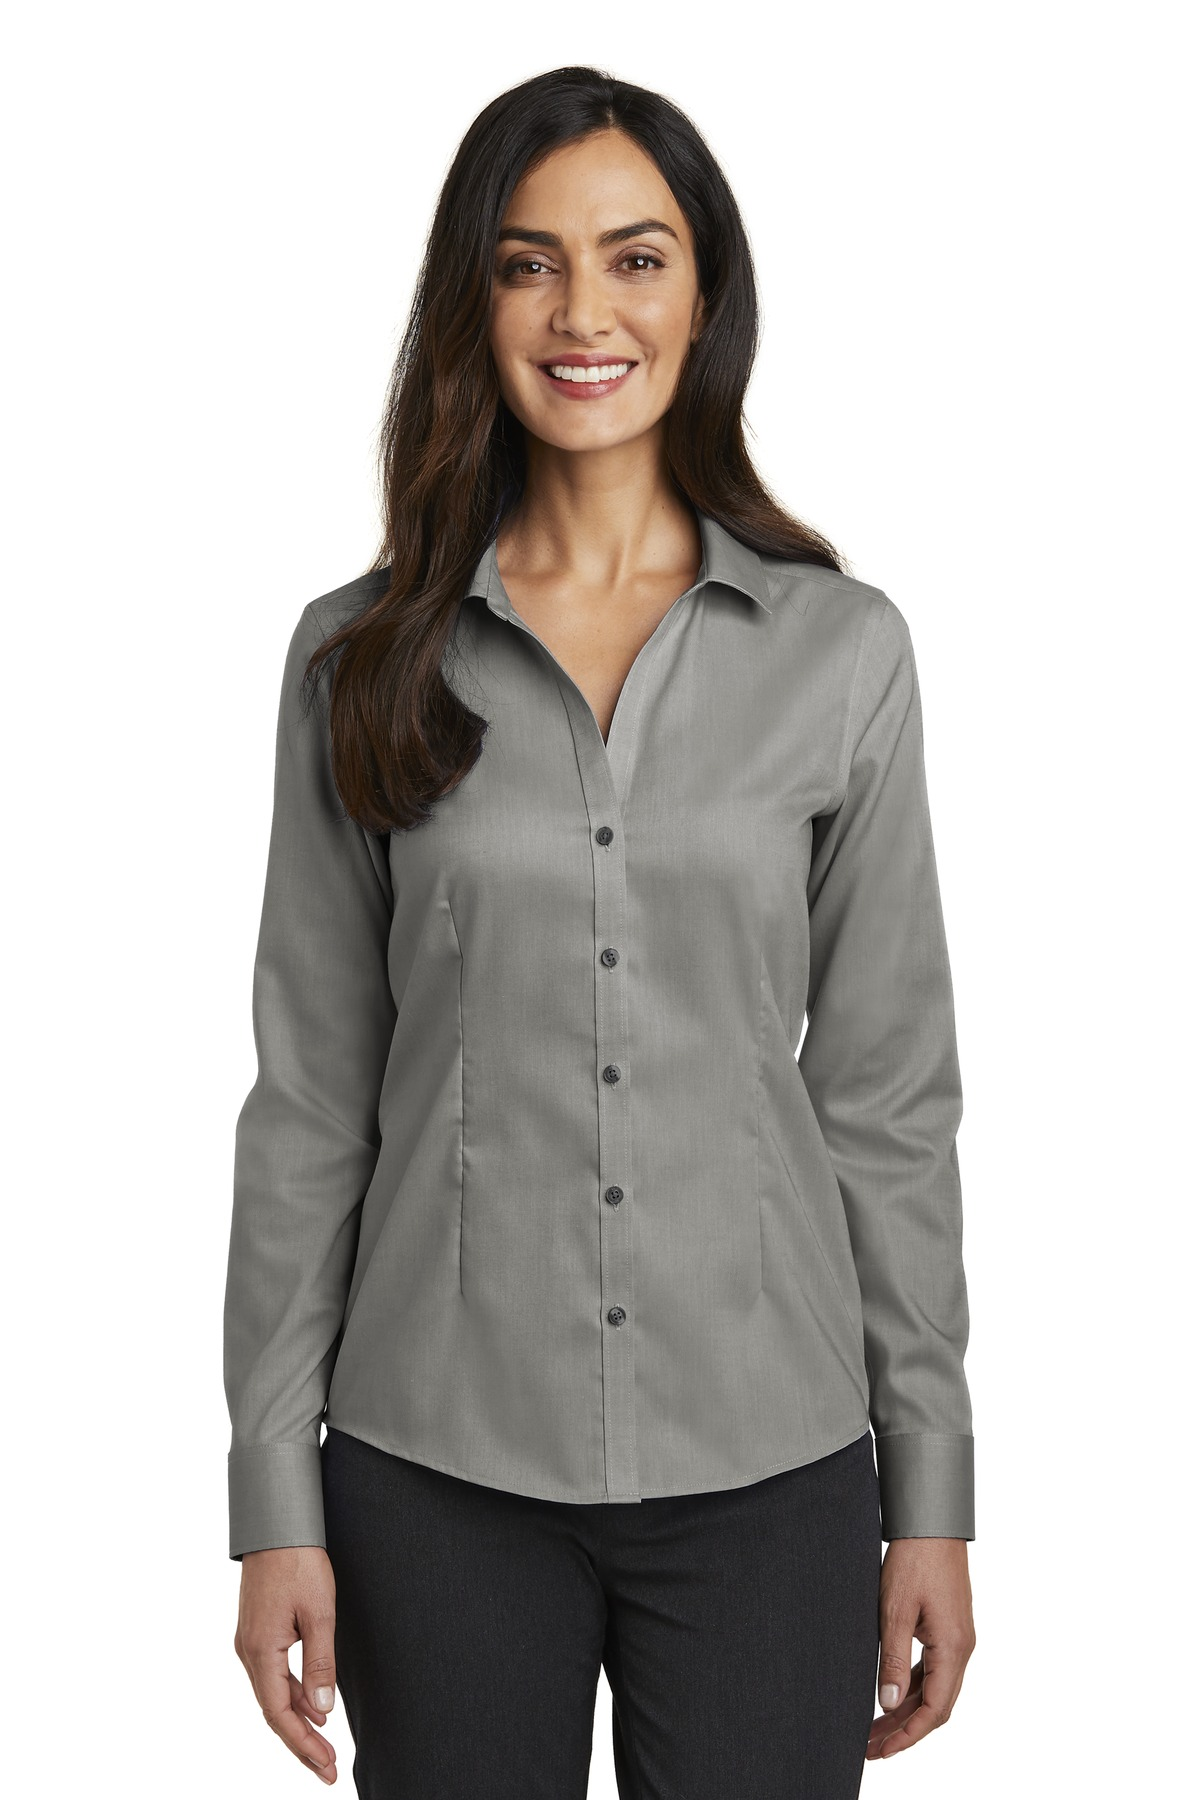 Red House ®   Ladies Pinpoint Oxford Non-Iron Shirt. RH250 - Charcoal